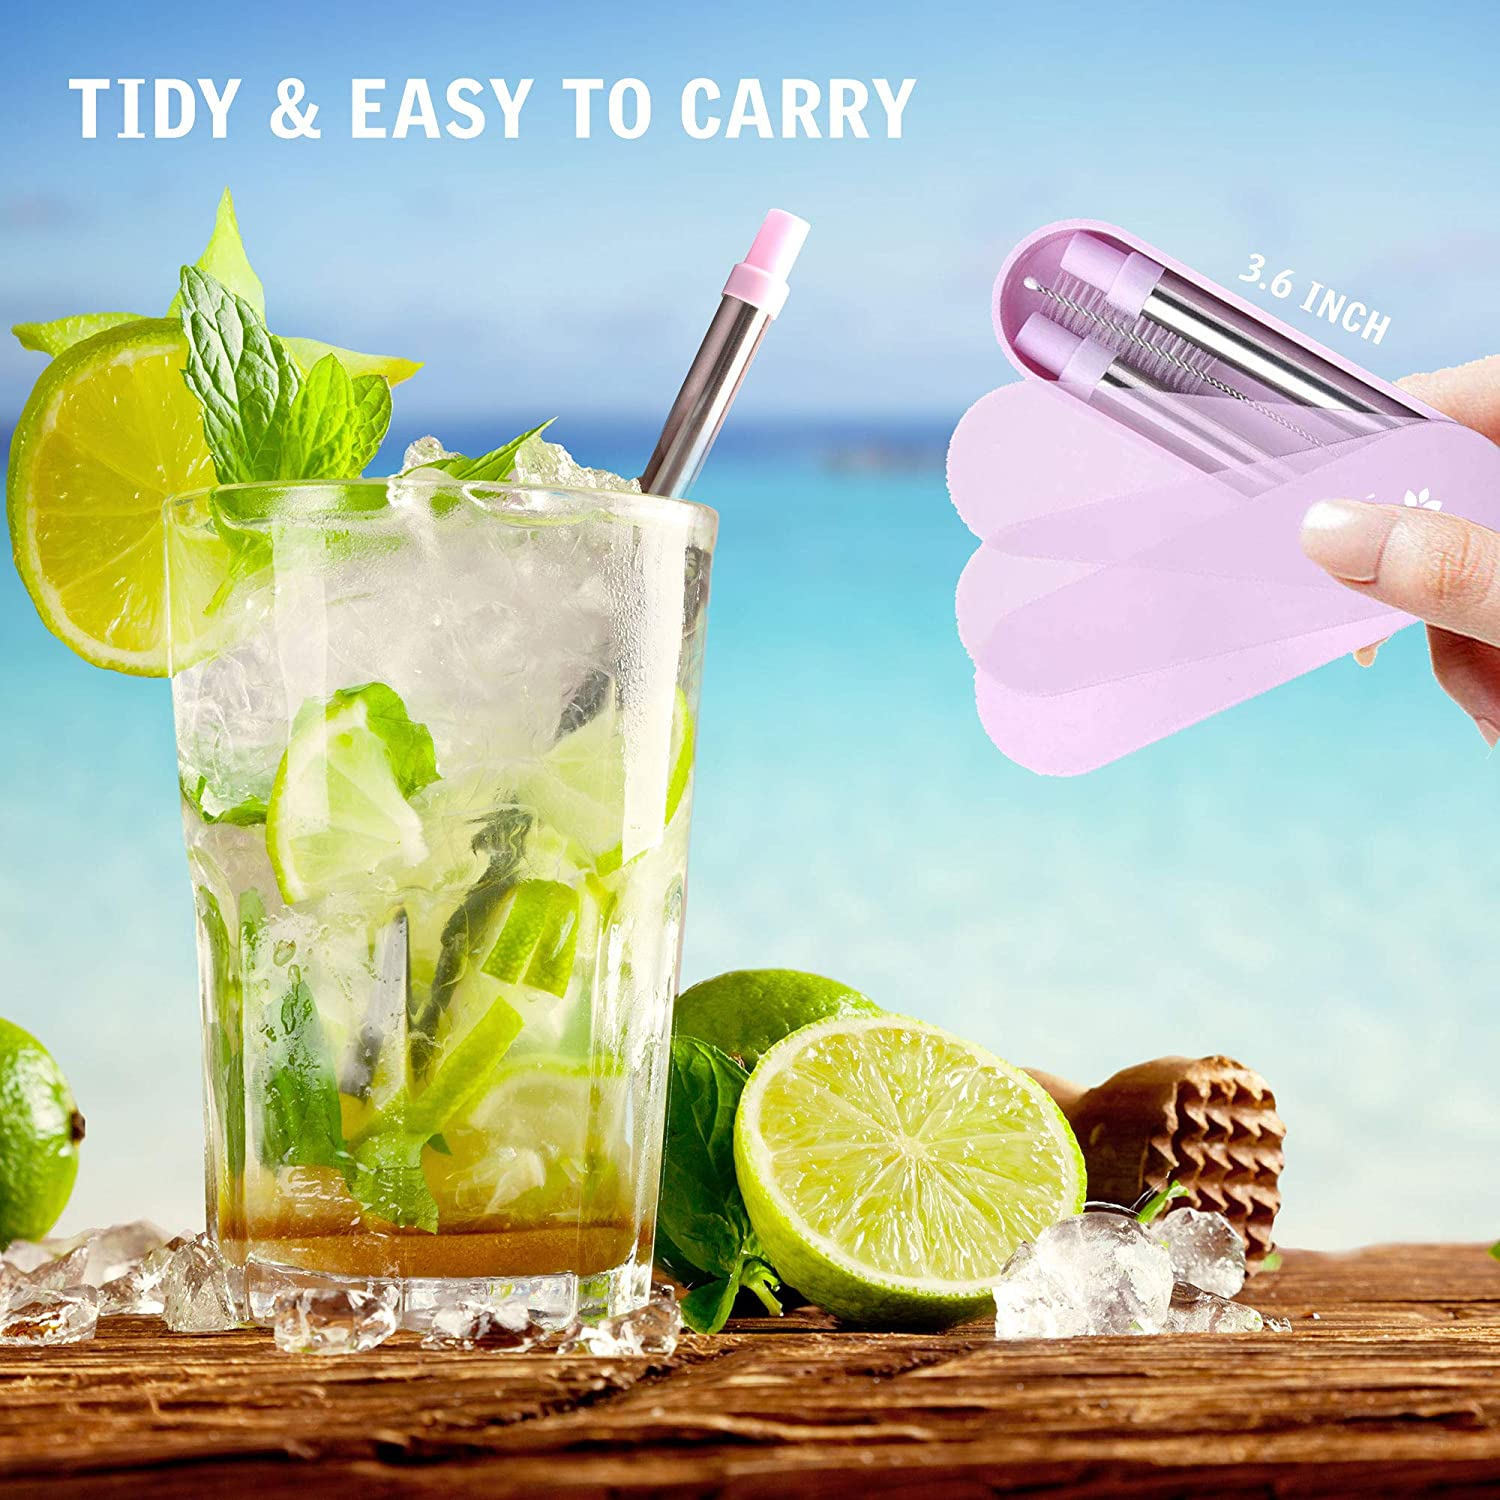 2 Pack Kaitse Stainless Steel Drinking Straws Portable Collapsible Straw with Case and Cleaning Brush Pink-Blue Reusable Straws Telescopic Metal Travel Straws